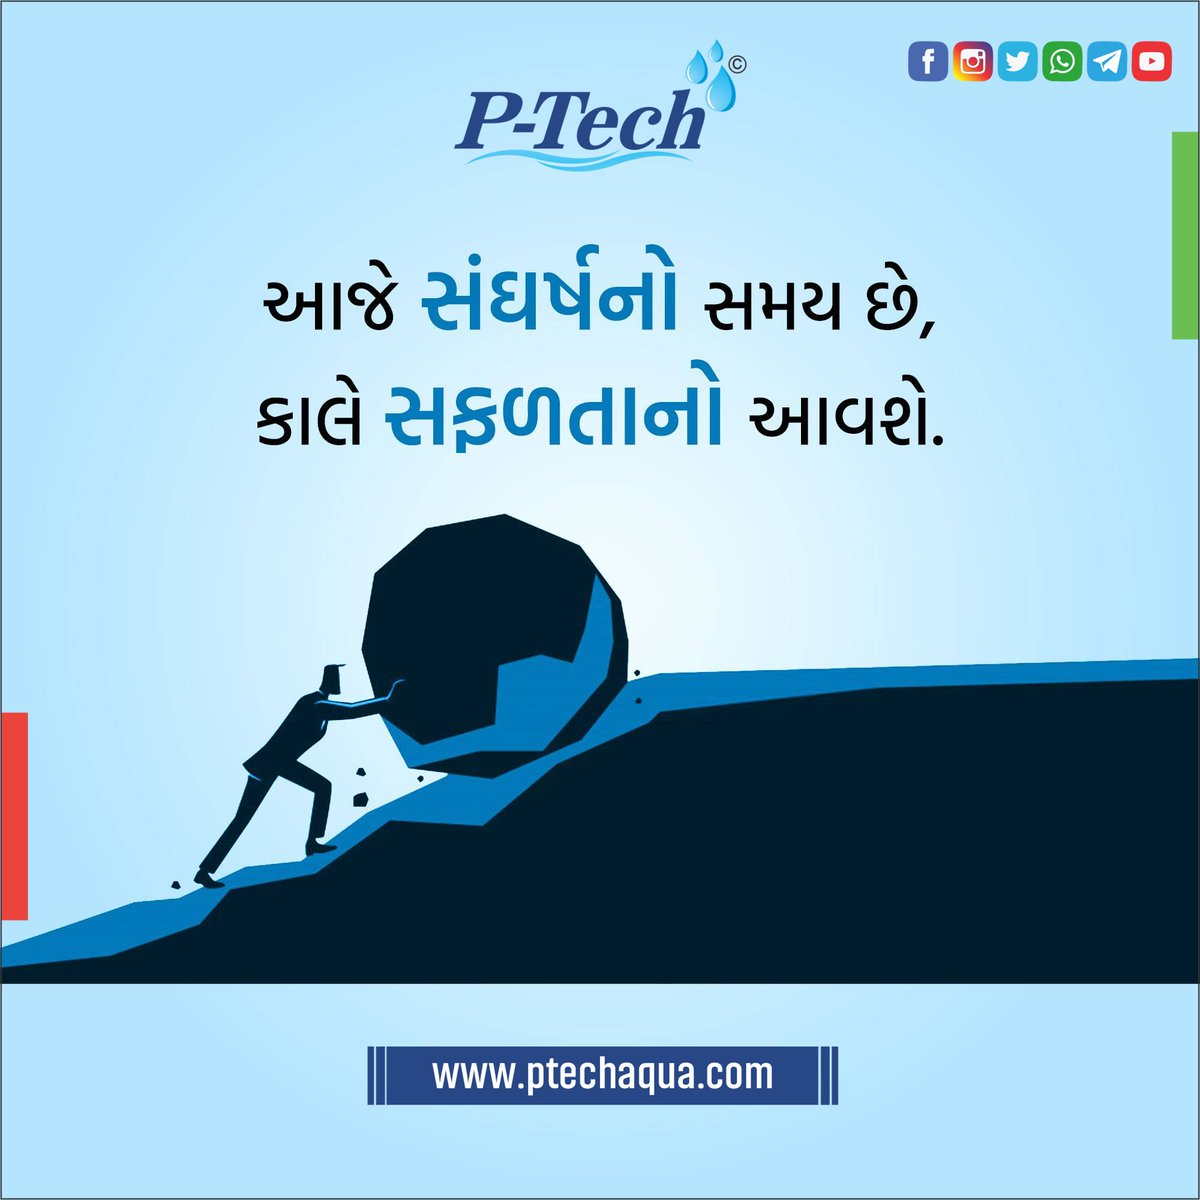 𝐆𝐨𝐨𝐝 𝐓𝐡𝐨𝐮𝐠𝐡𝐭. . . . . #ptechaqua #gujaratithoughts #yourself #loveyourself #love #life #quotes #writer #instadaily #sad #poetry #writersofinstagram #photooftheday #quoteoftheday #bhfyp #lifestyle #happy #quote #motivation #inspirationalquotes #words #mindset #art https://t.co/DnBHgC8BKf